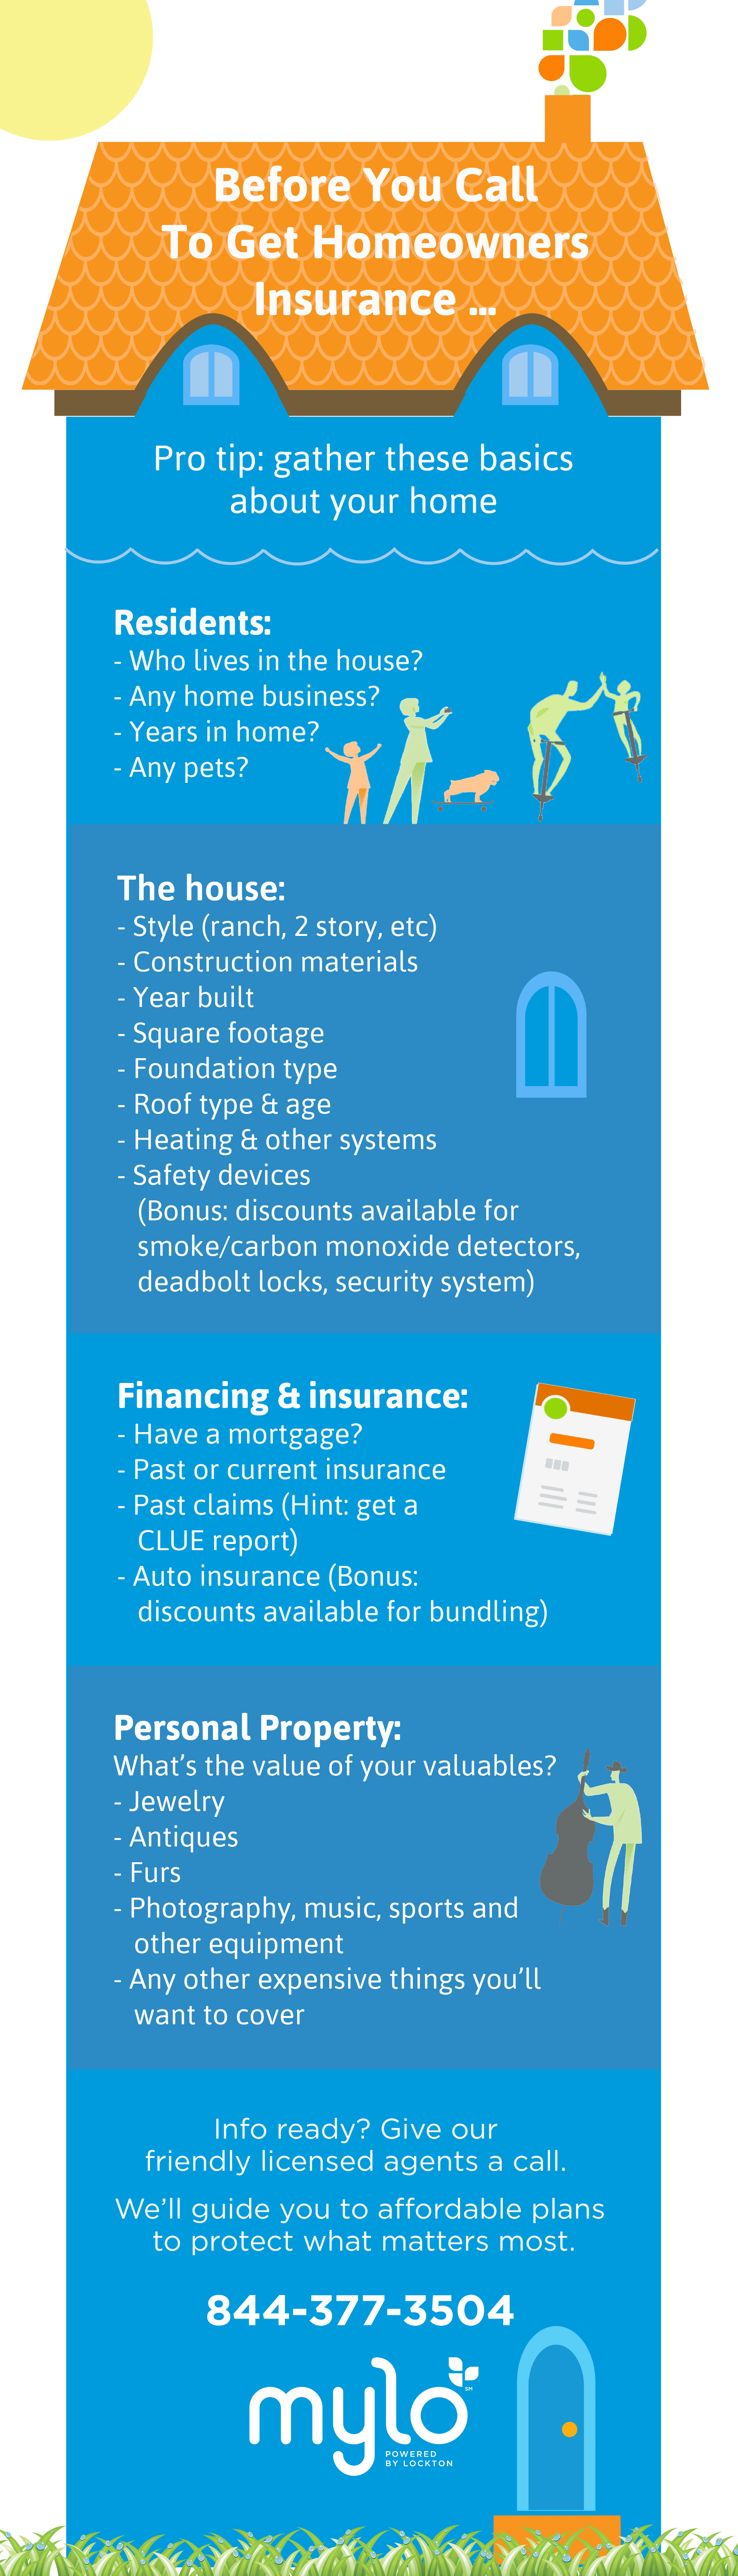 Homeowners Insurance Shopping Checklist Graphic